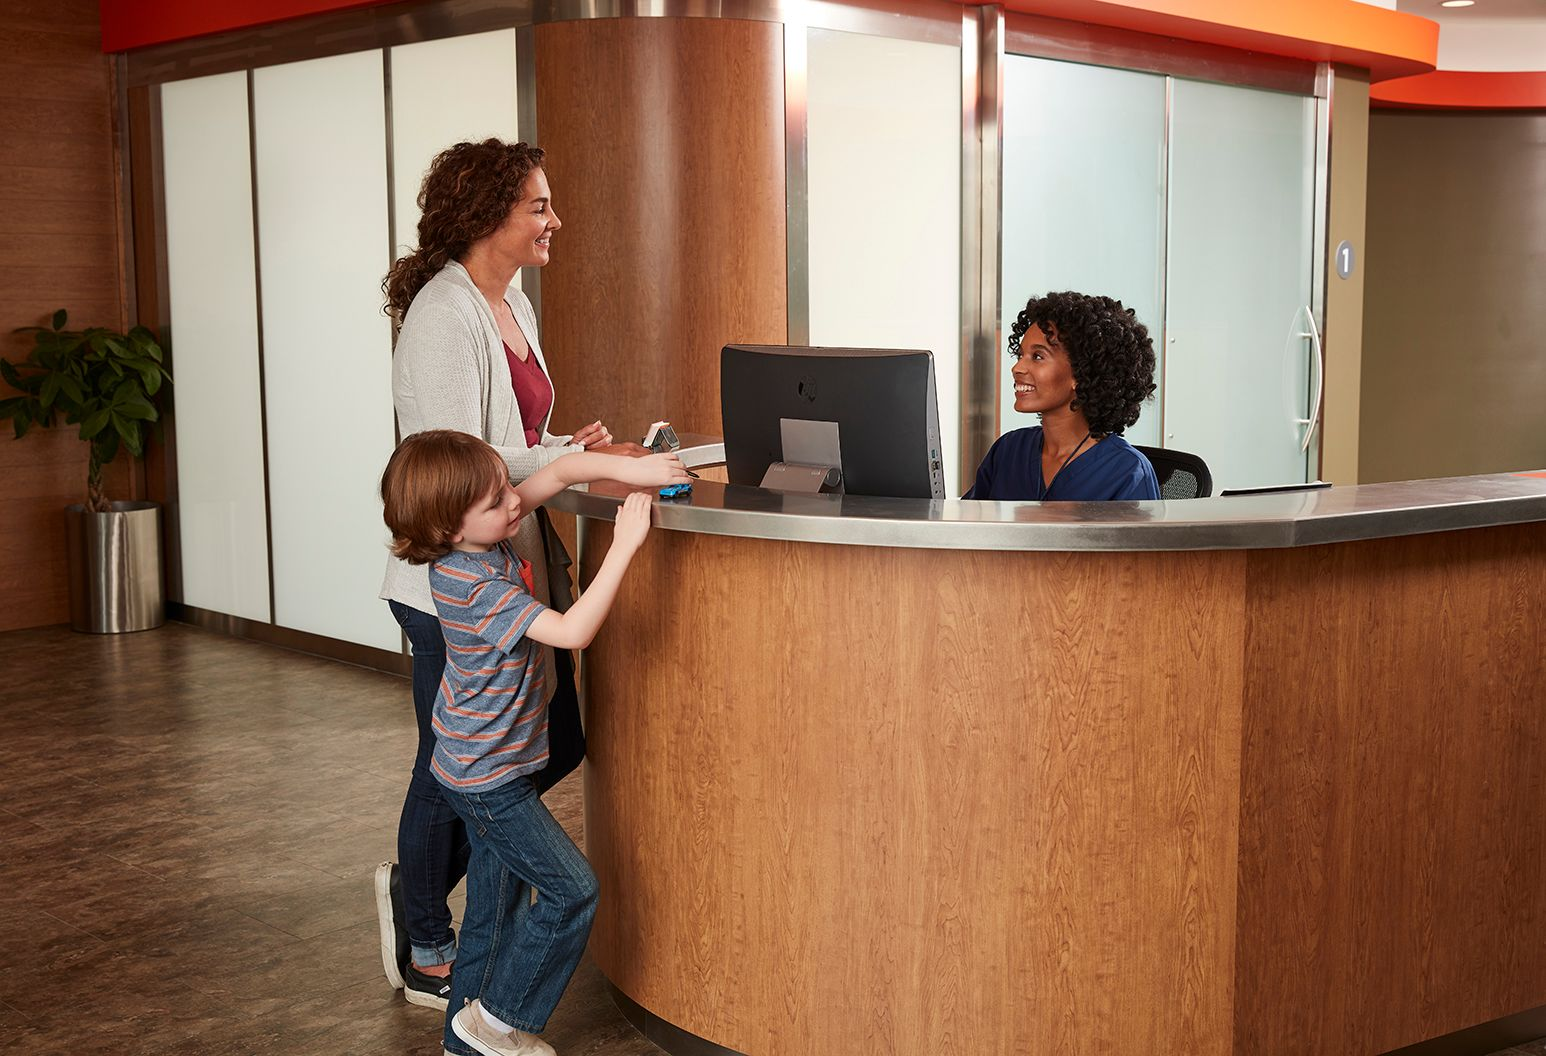 Woman and child at reception desk, talking to receptionist